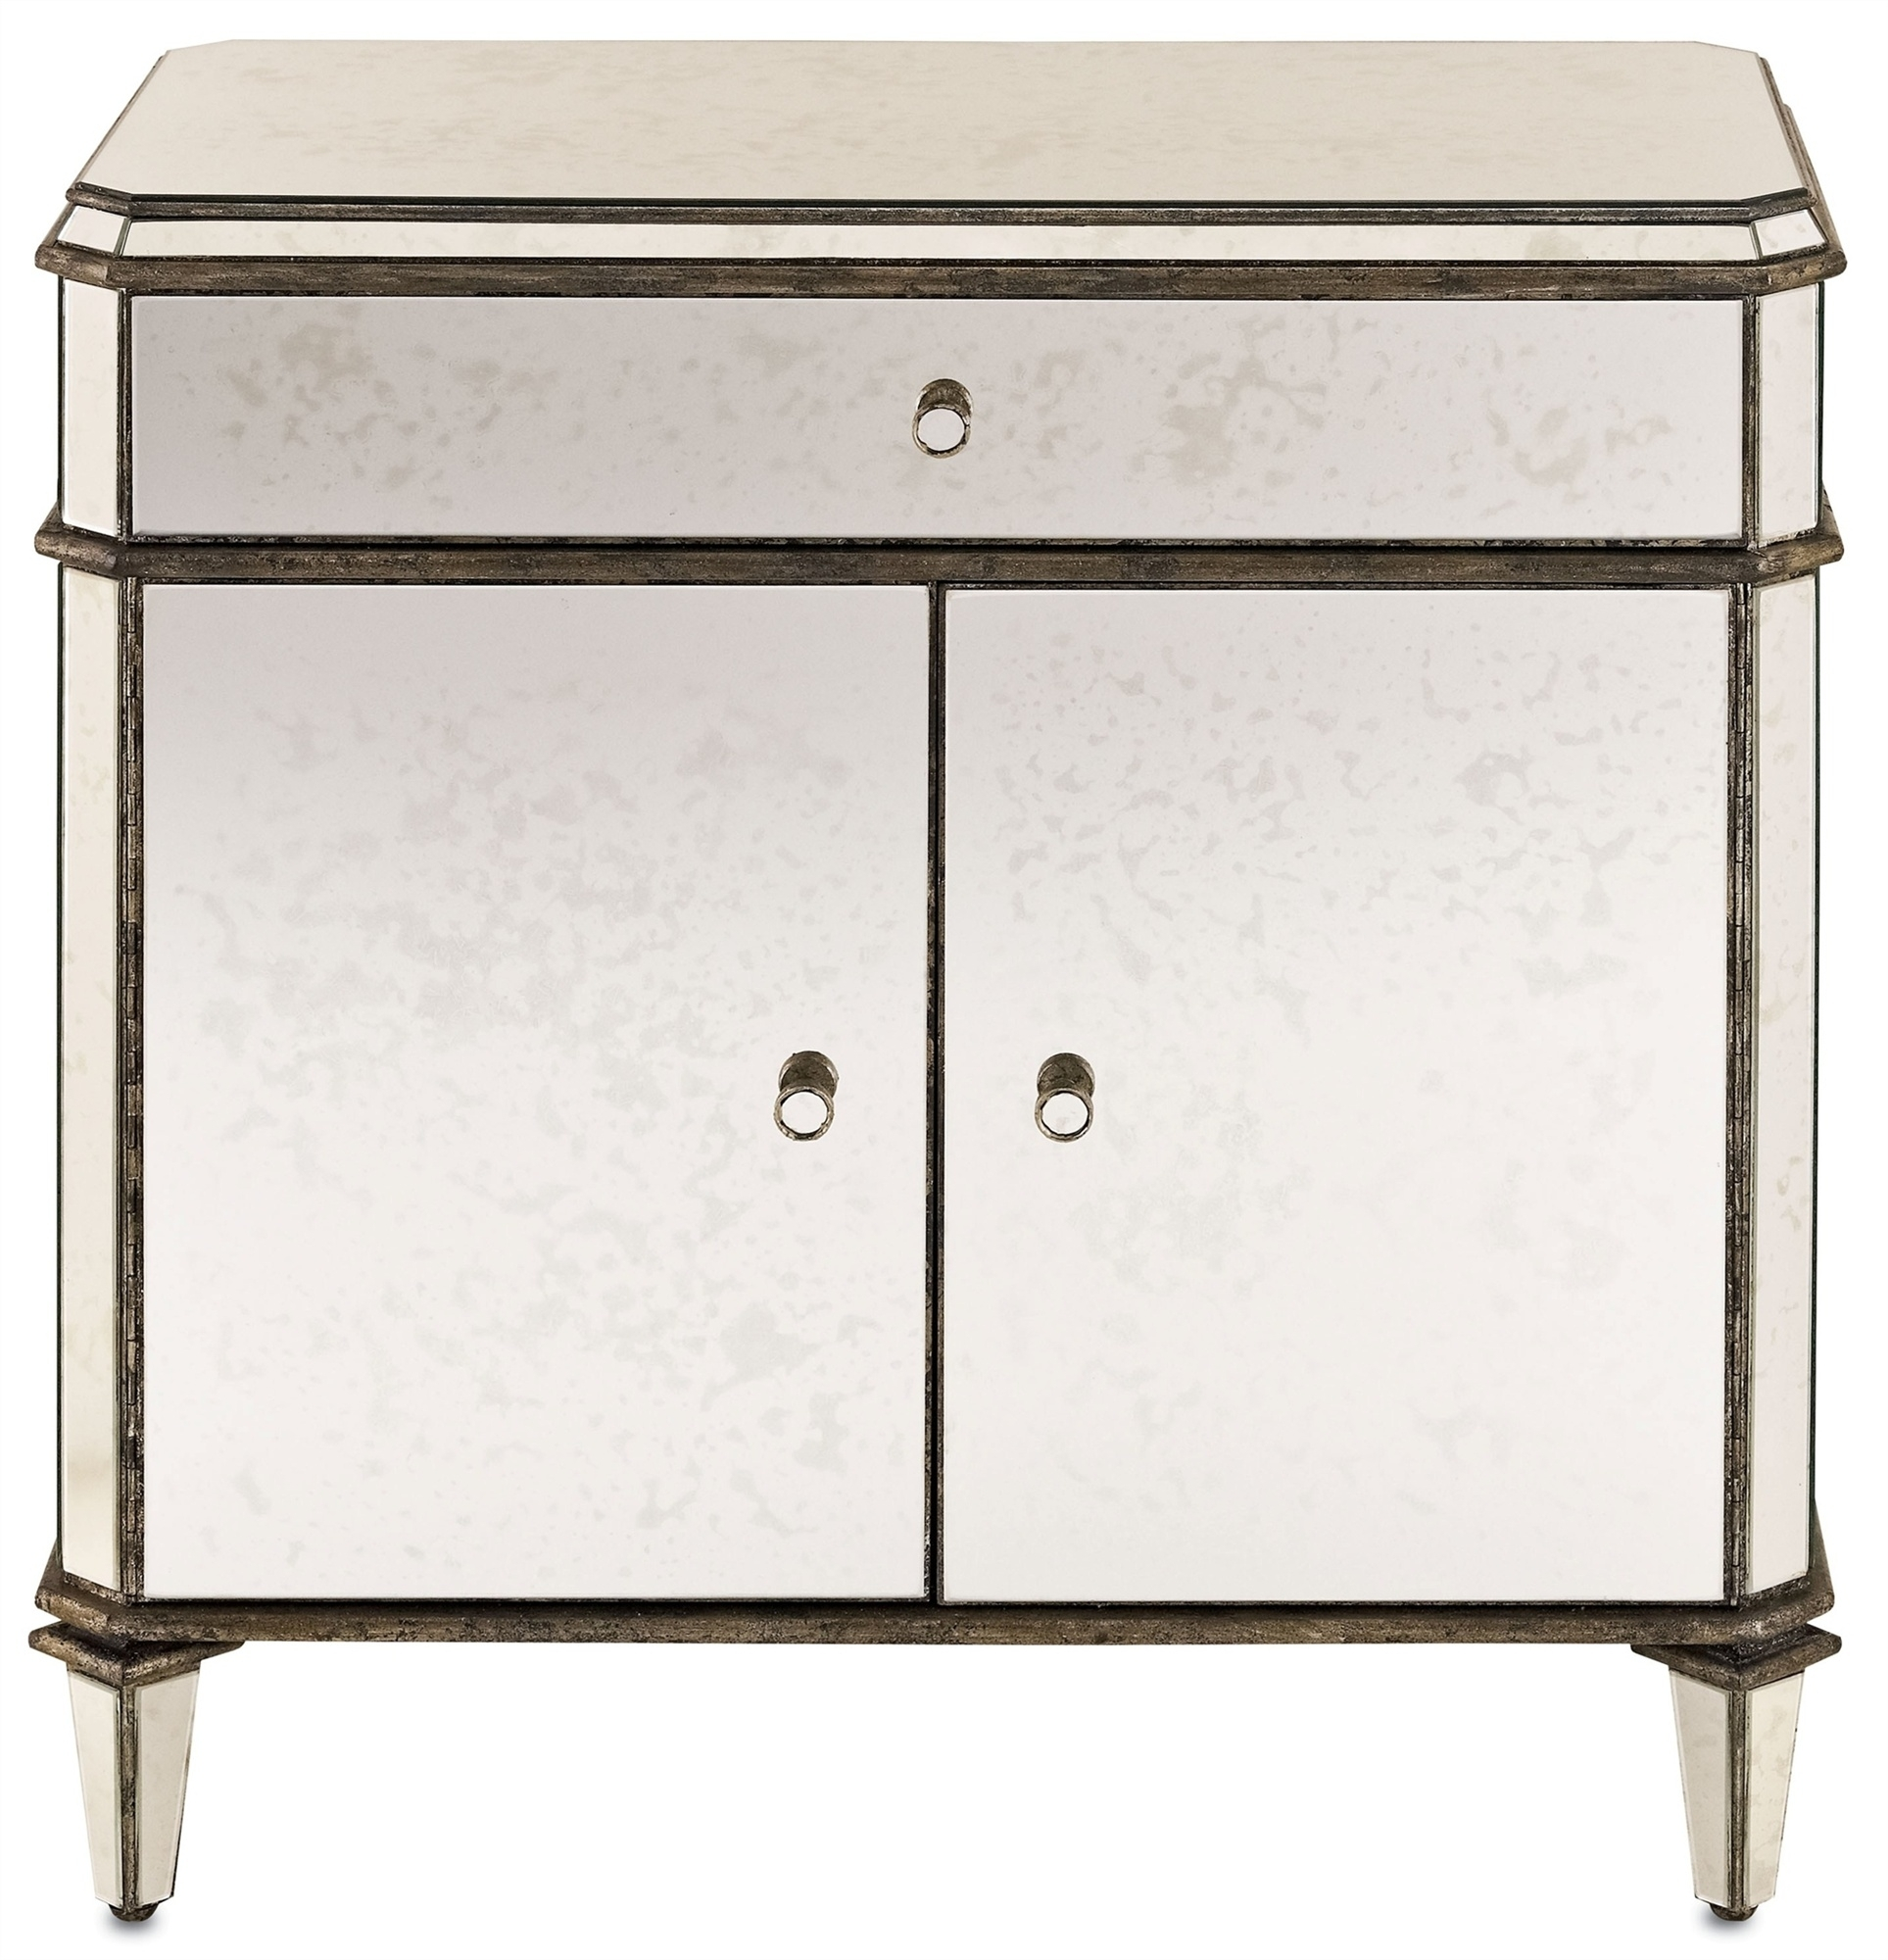 Antiqued Mirror Sideboard | Currey And Company with regard to Aged Mirrored 4 Door Sideboards (Image 4 of 30)